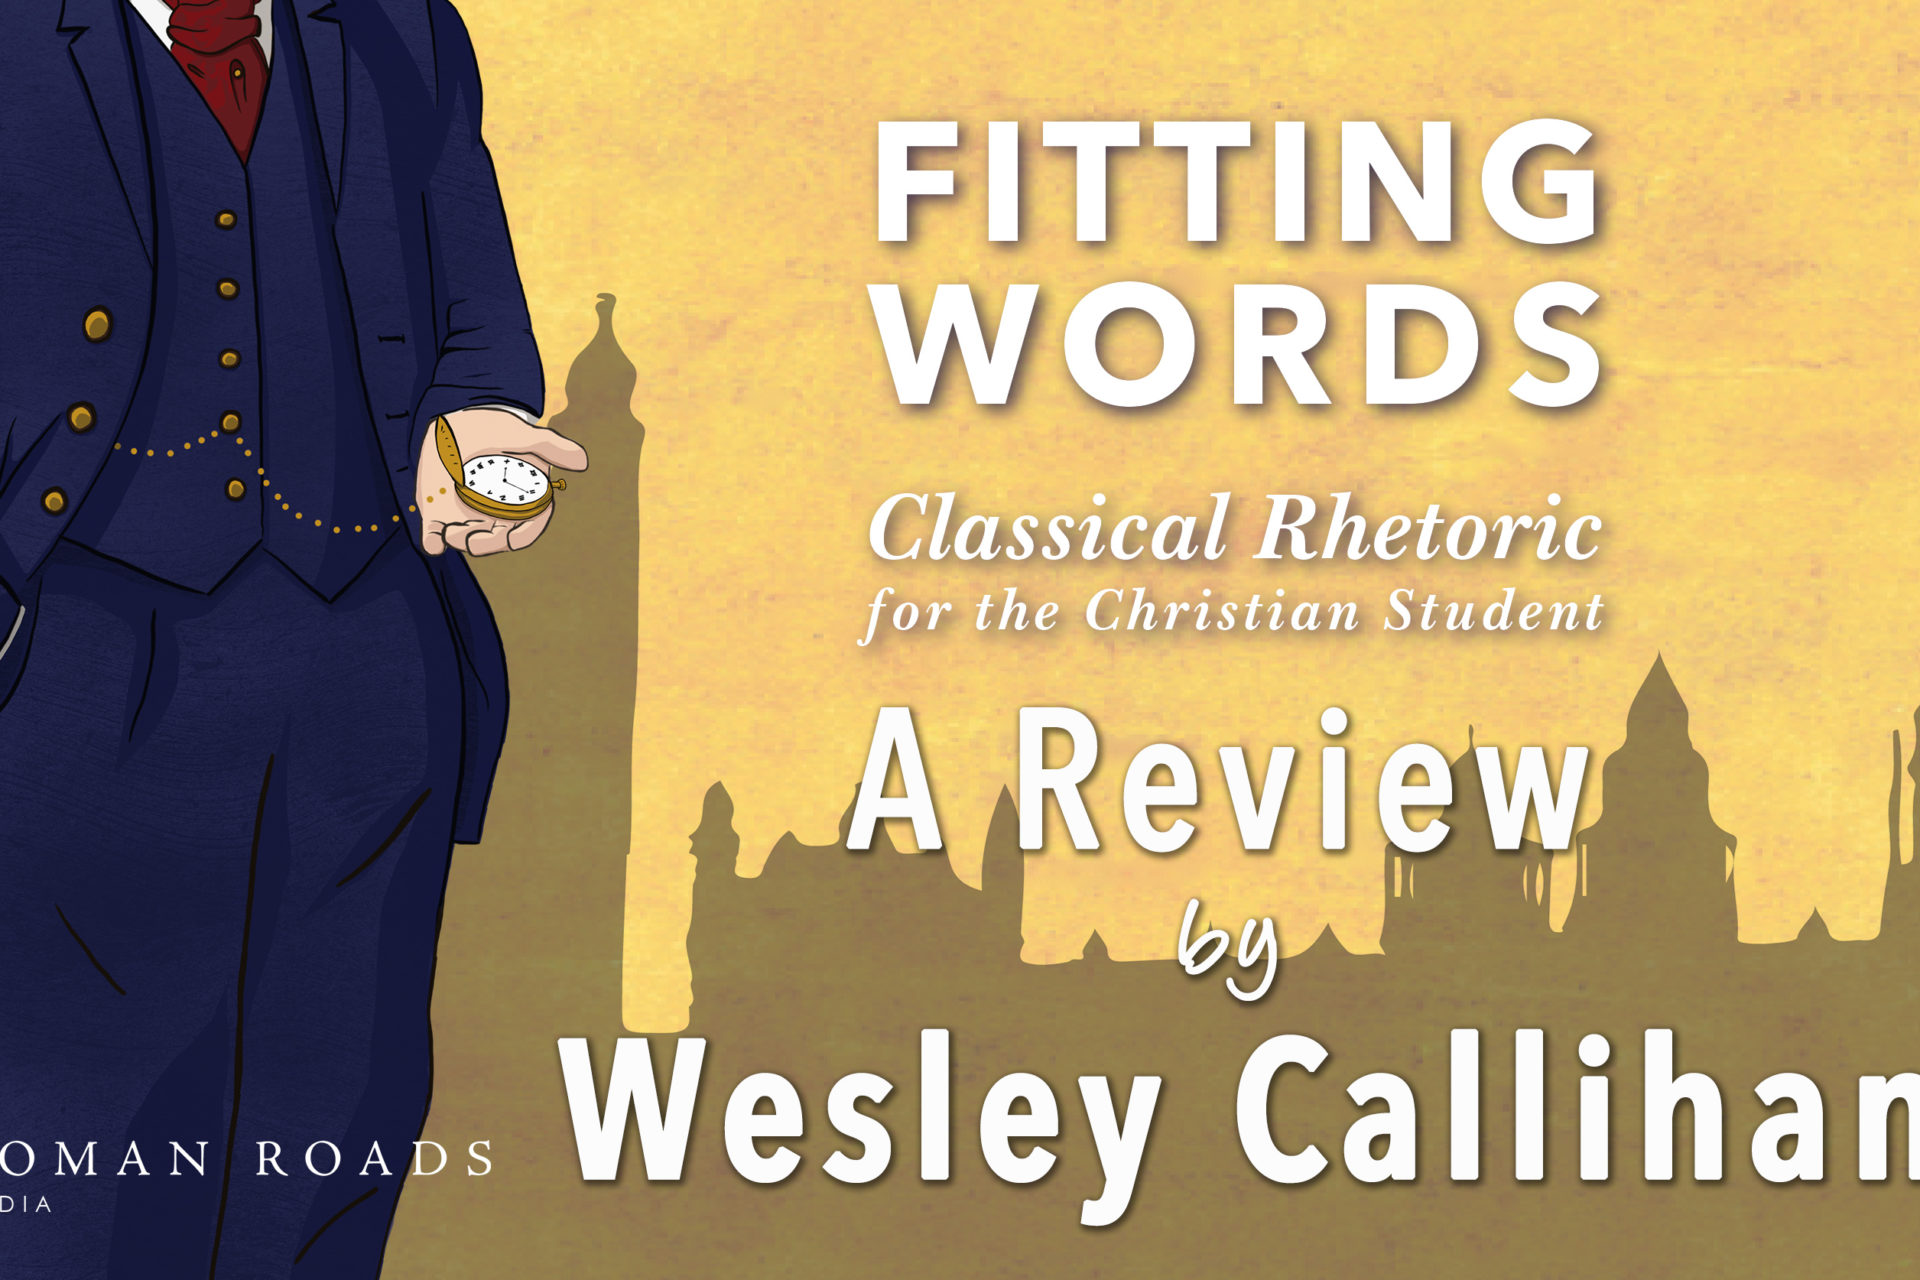 A Review of Fitting Words by Wesley Callihan